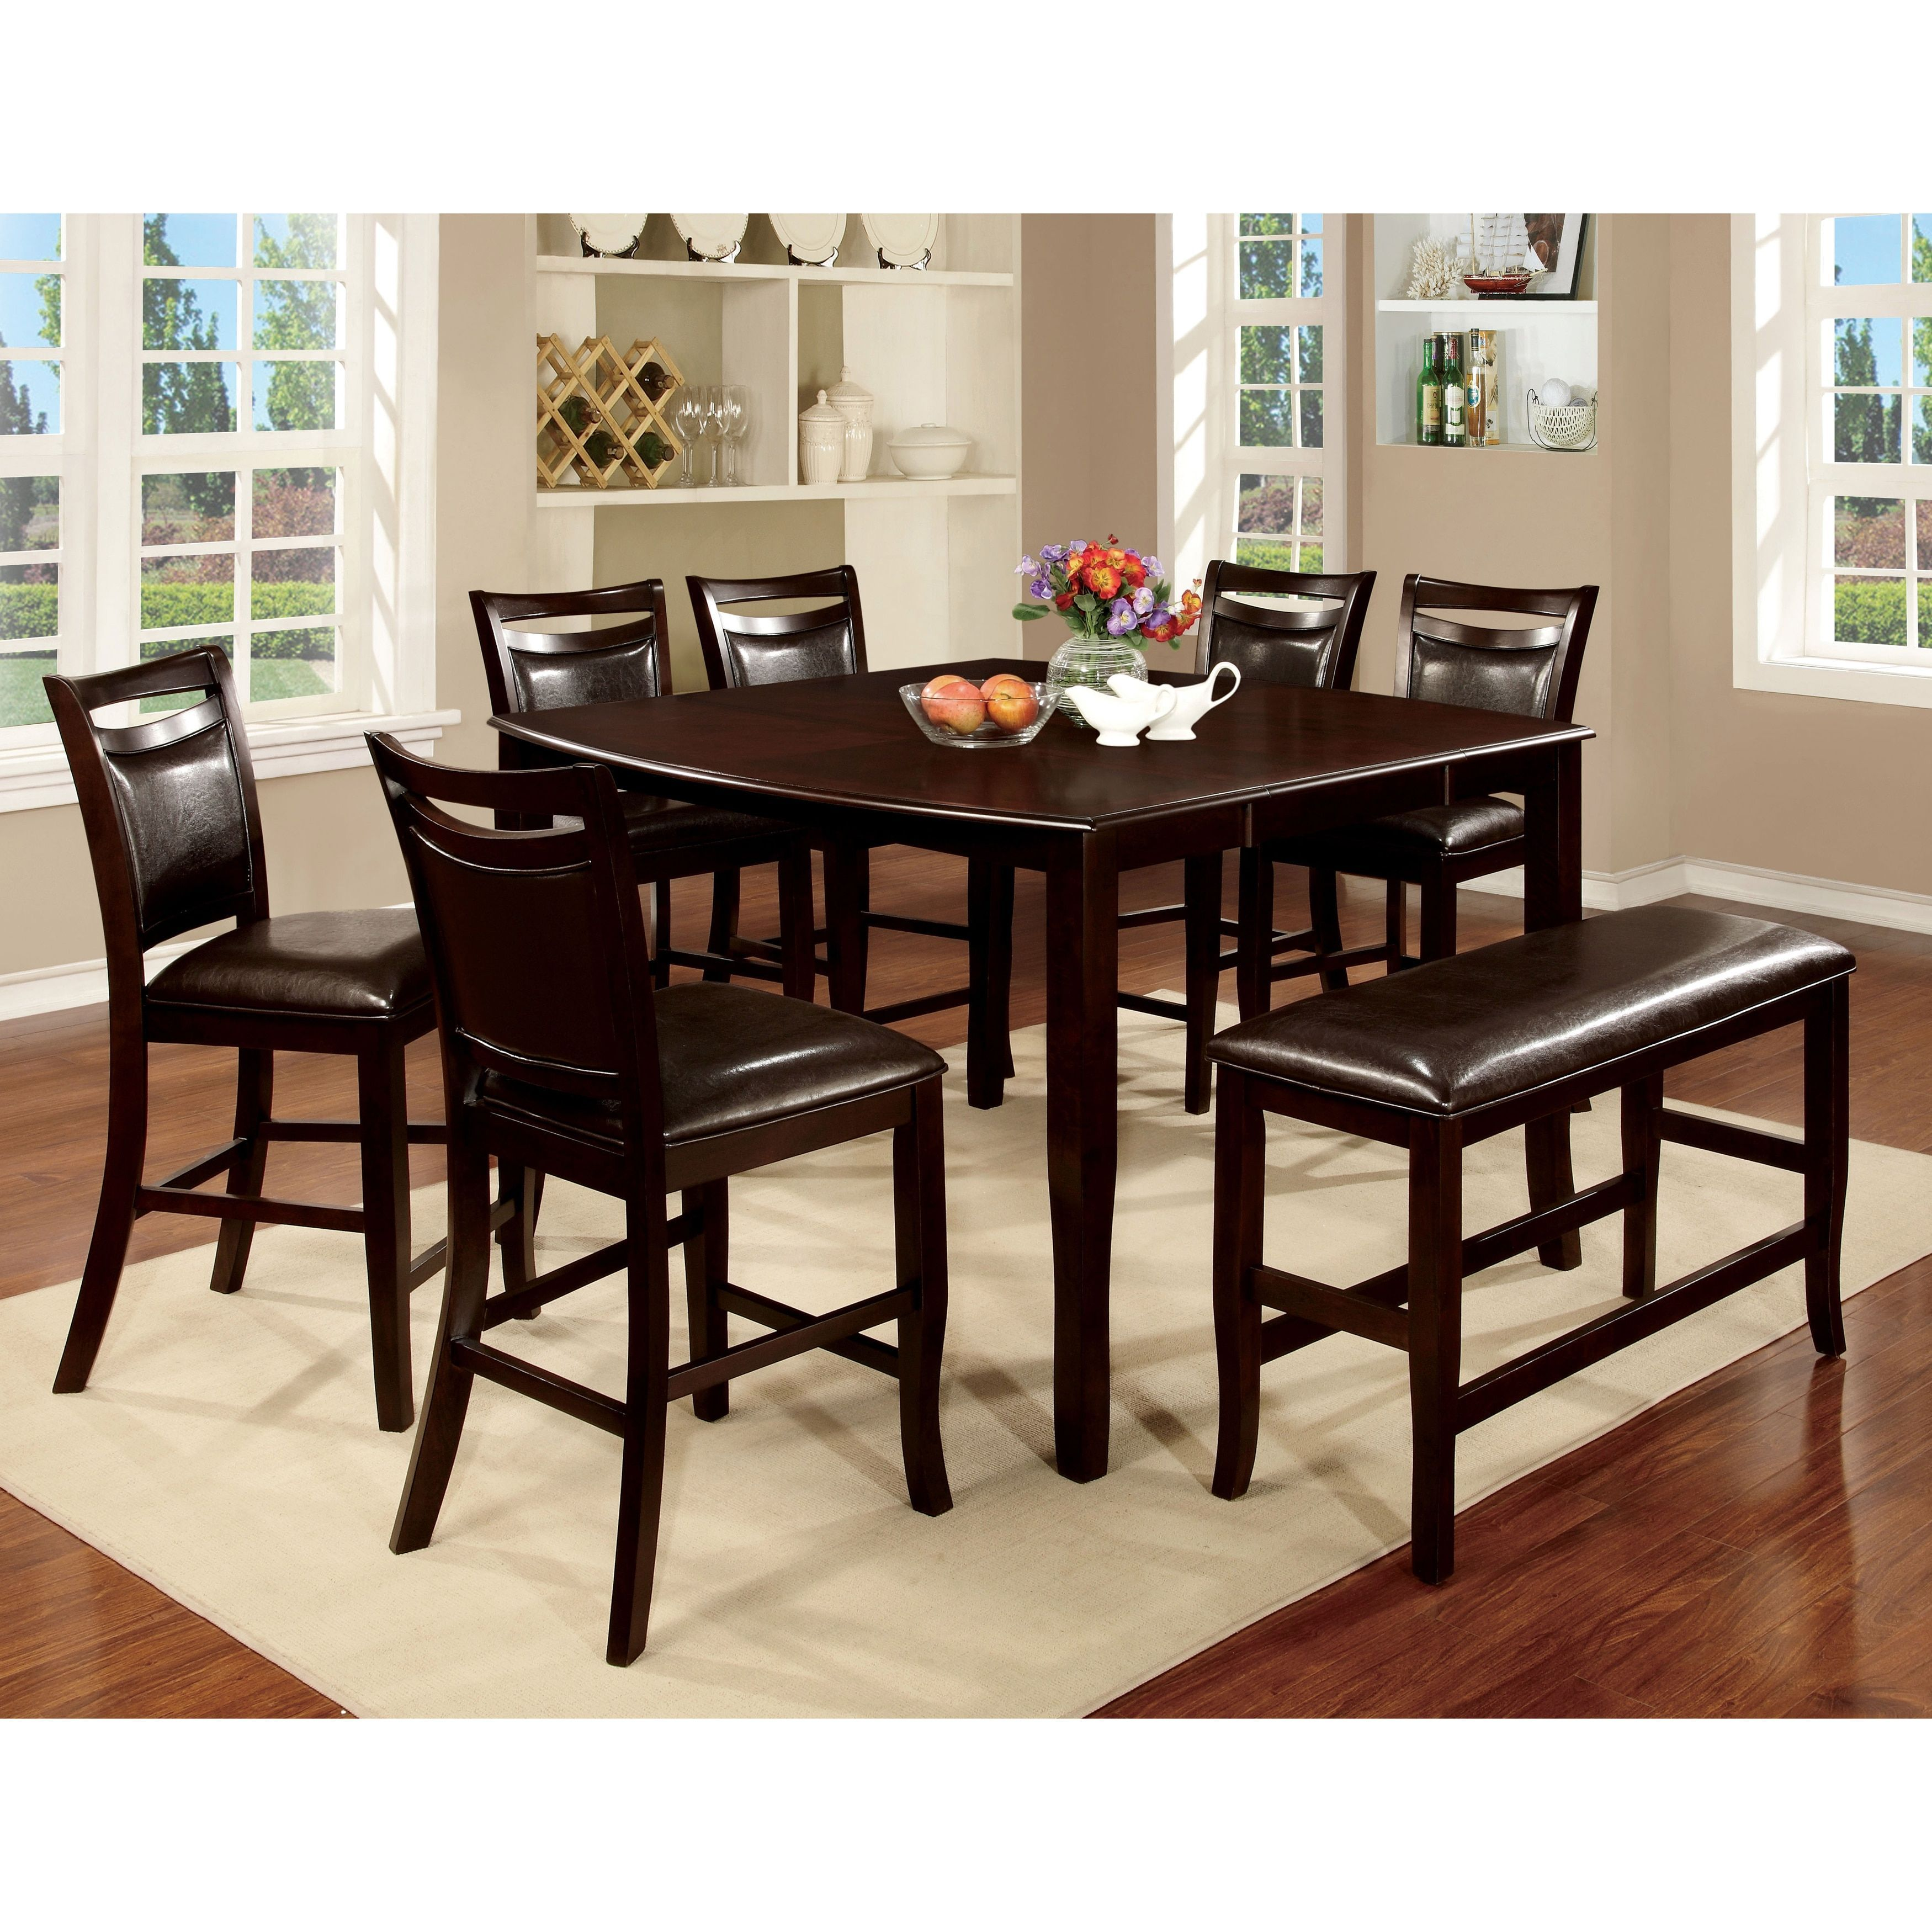 30++ Espresso counter height dining set Trend